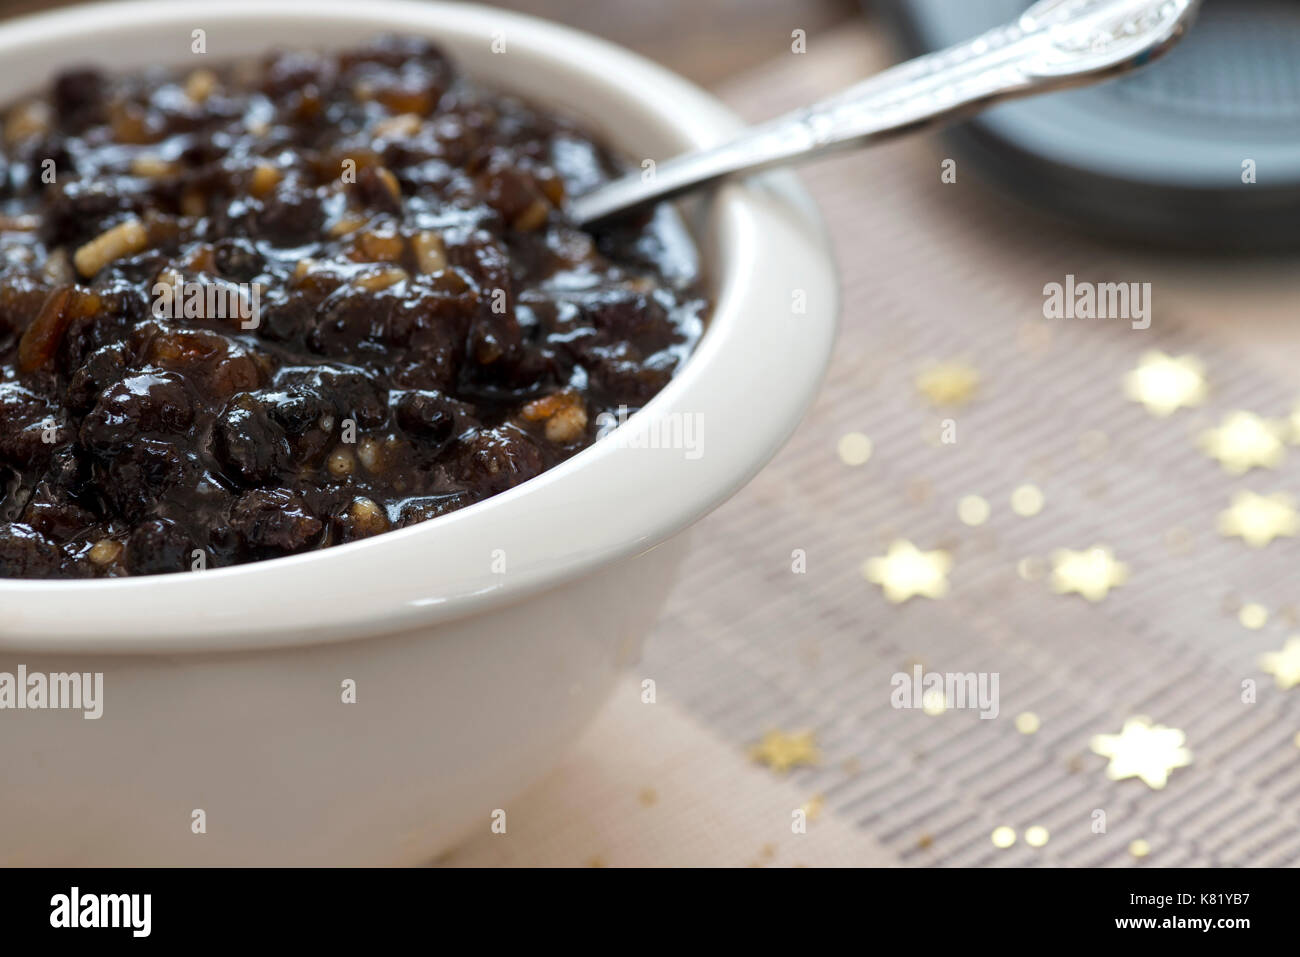 macro image of homemade traditional Christmas mincemeat made with mixed fruit and brandy in a white bowl, focus Stock Photo